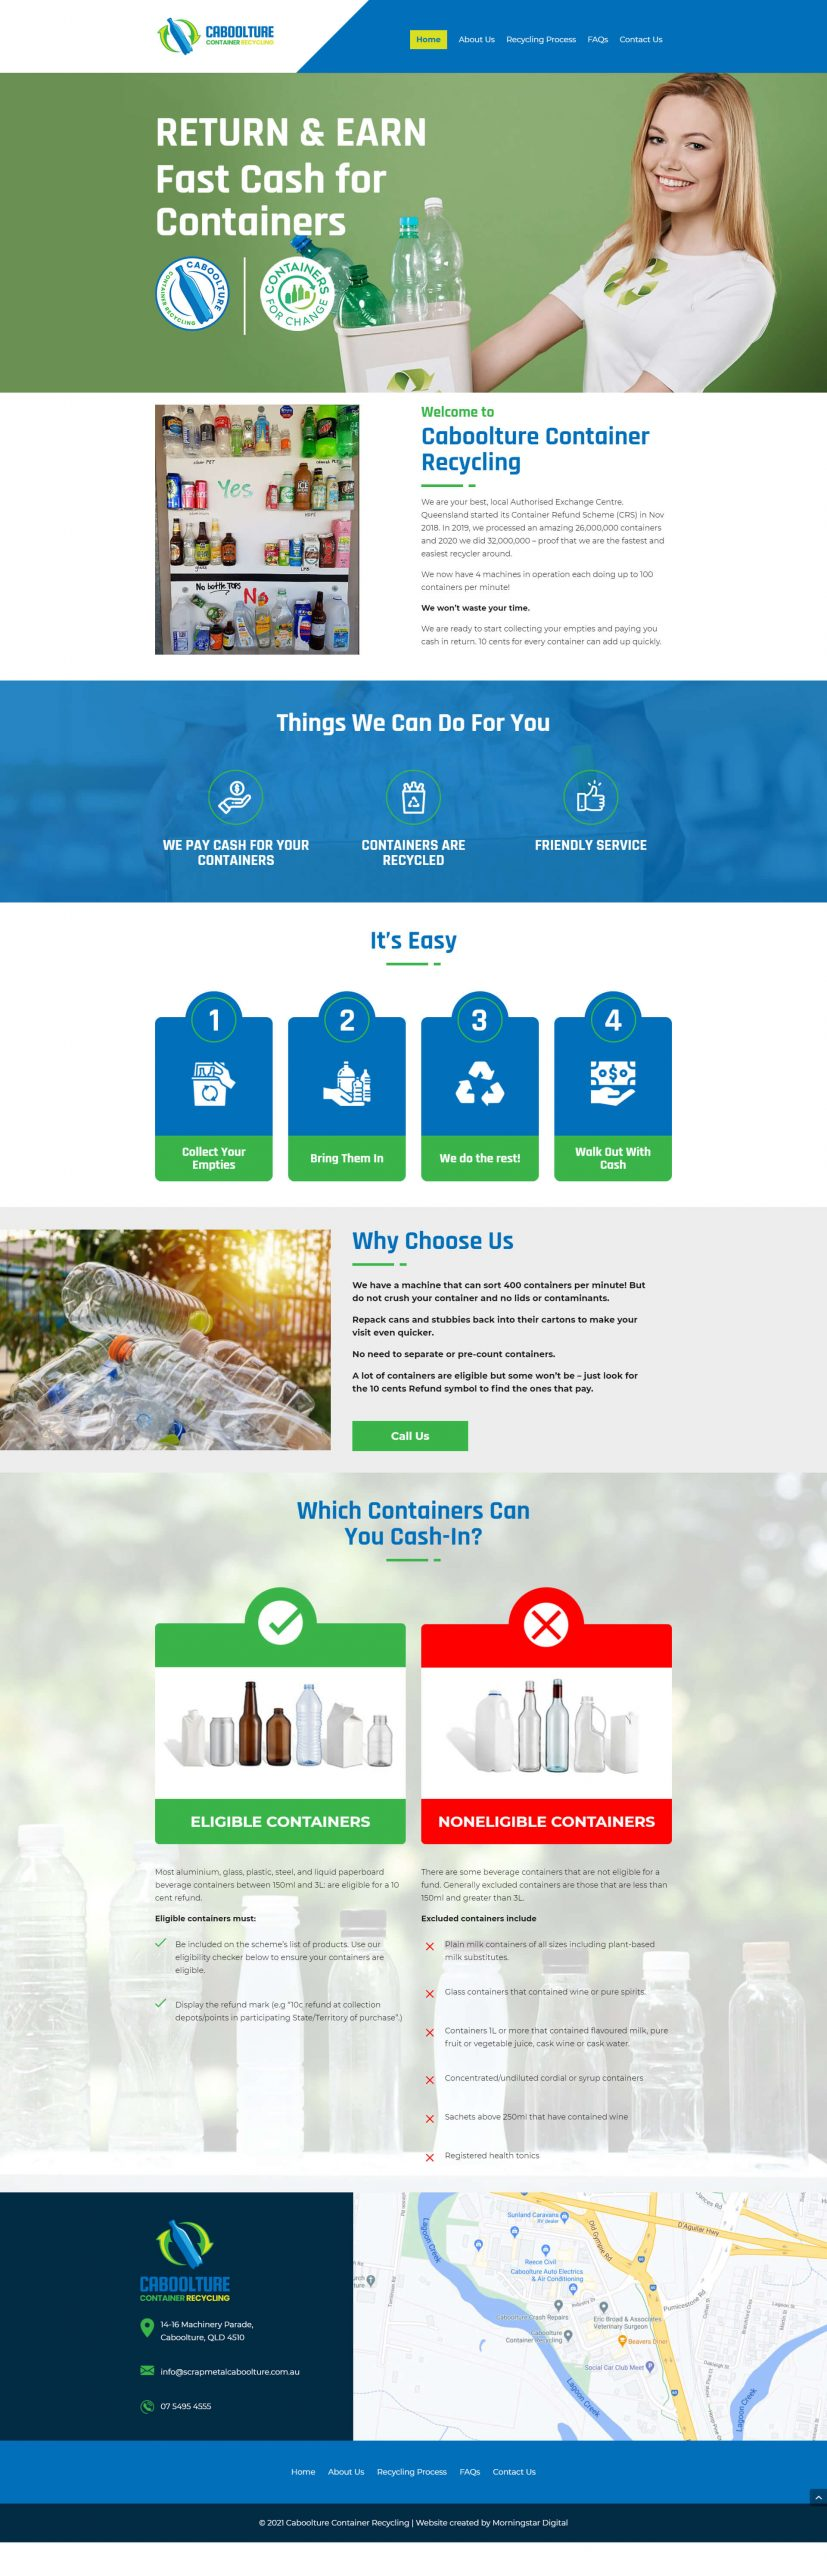 CCR Homepage